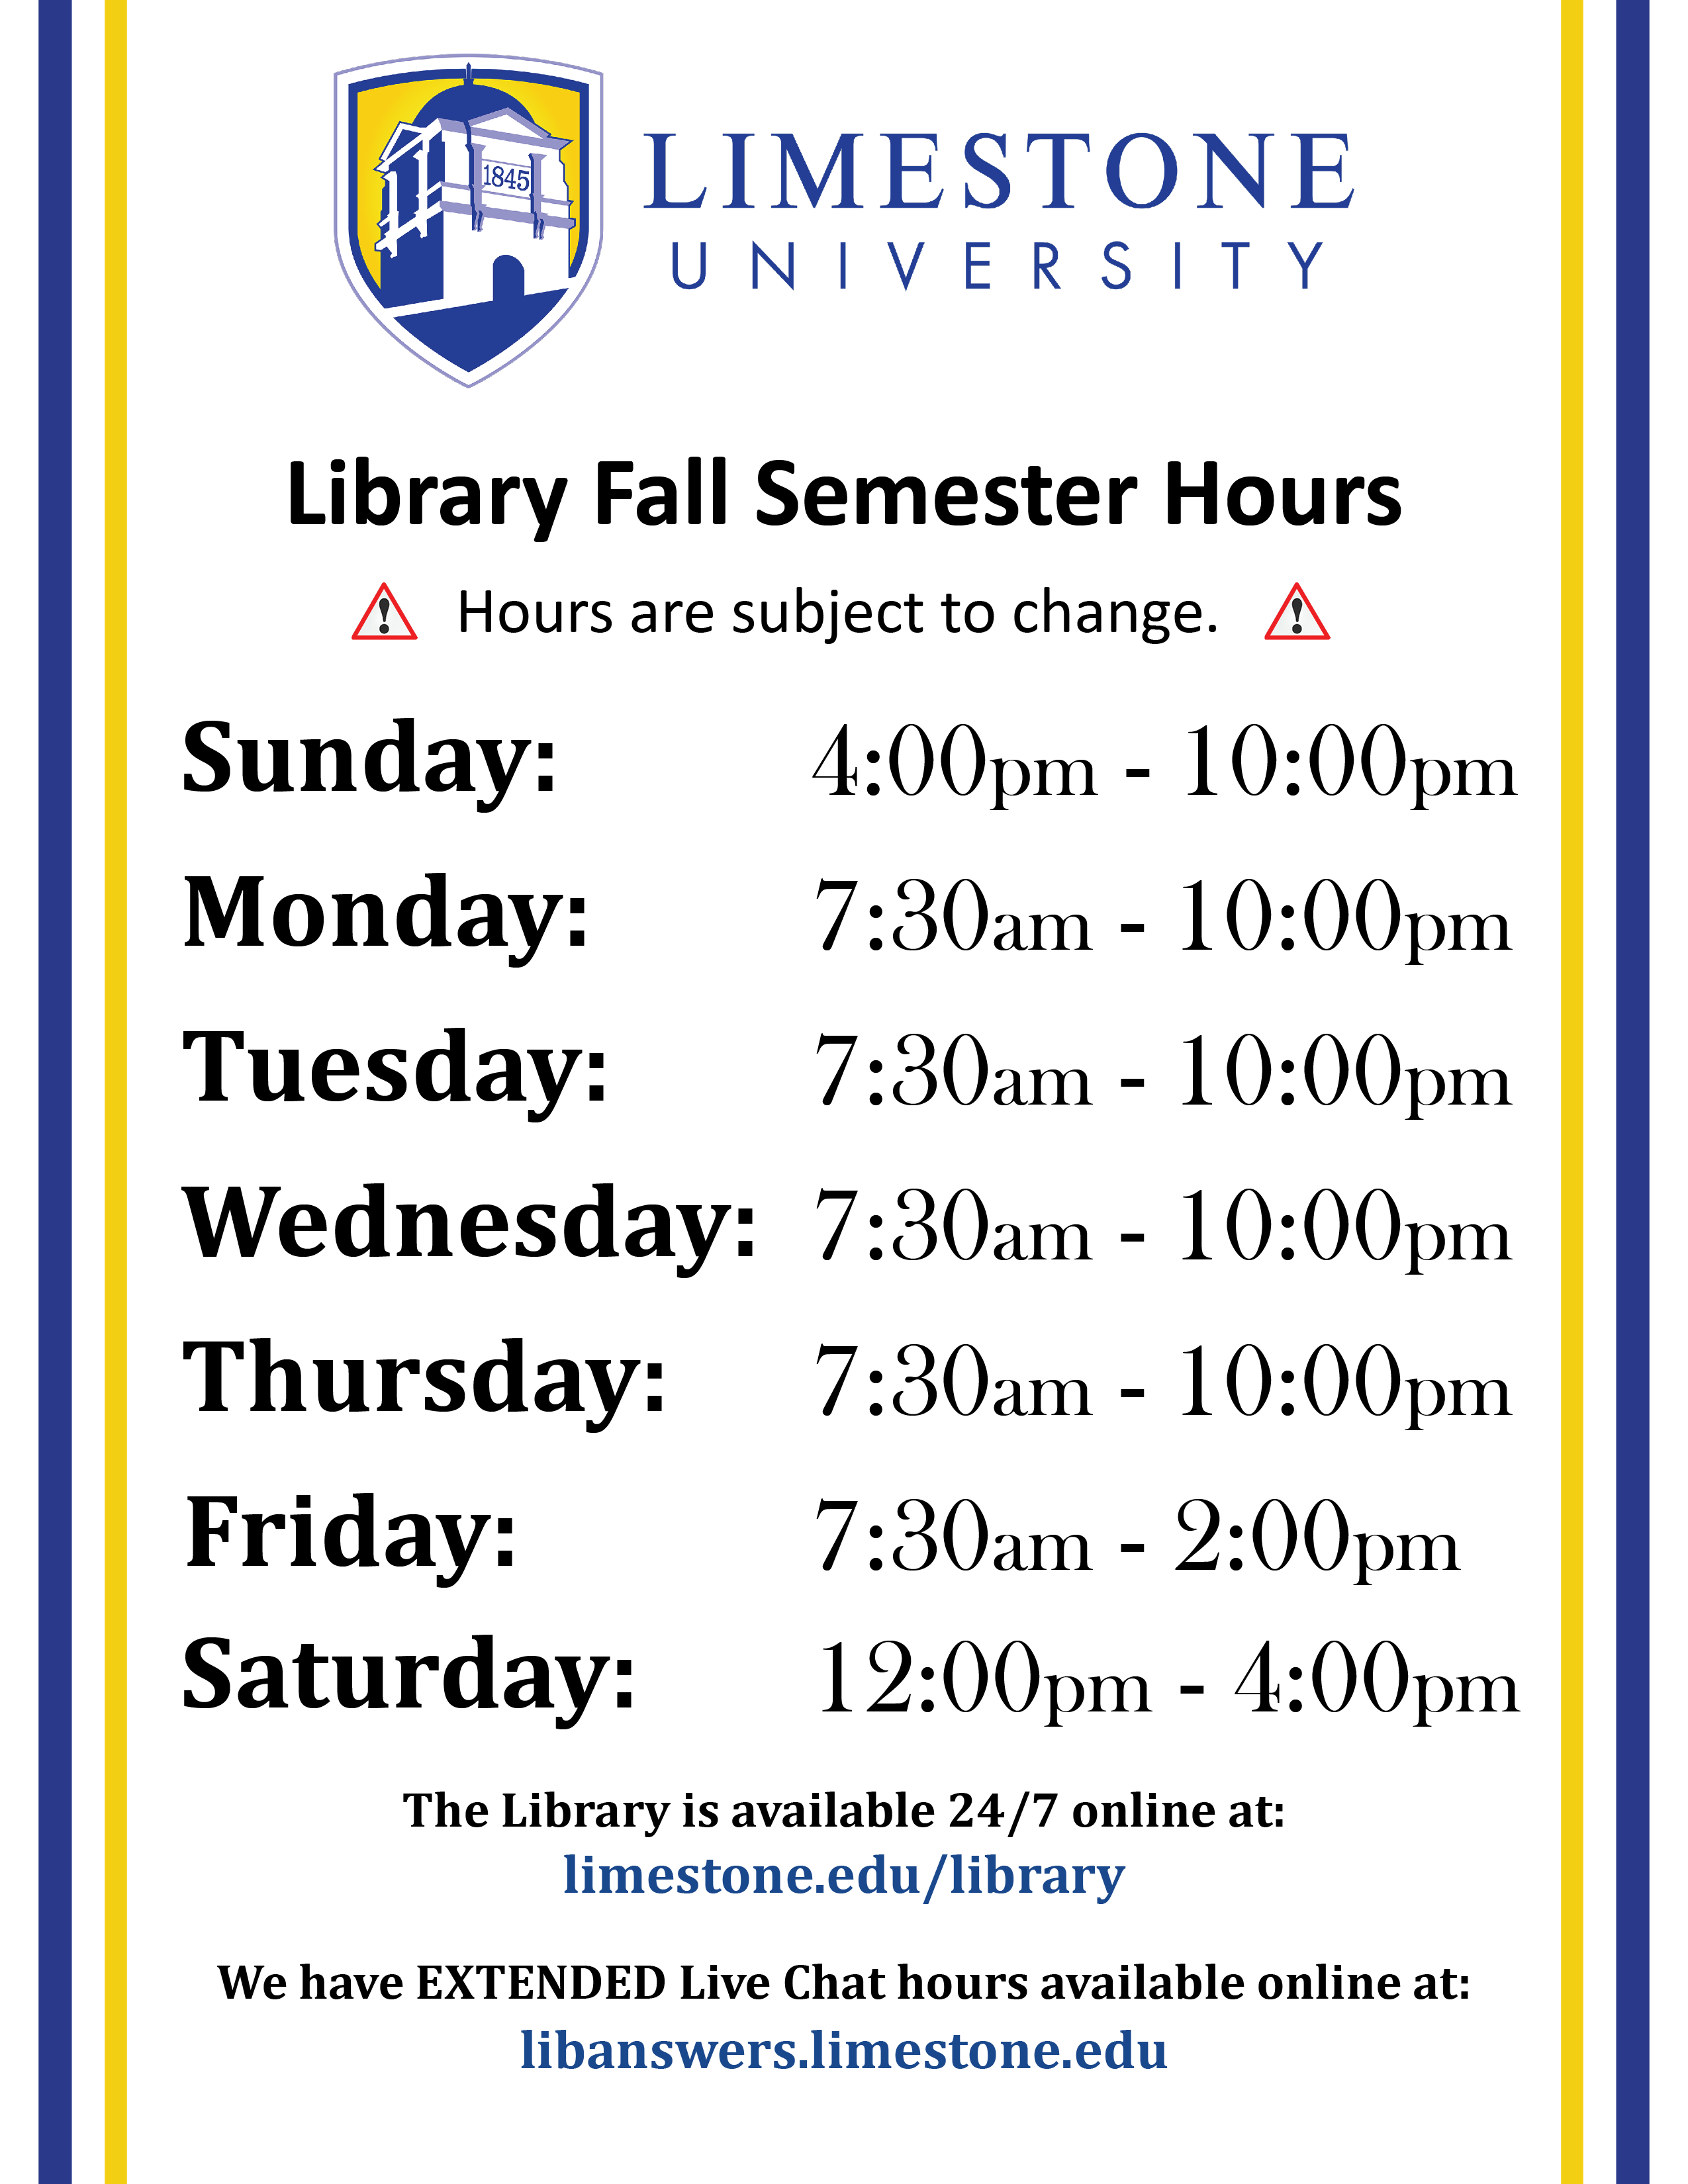 Library Fall Hours